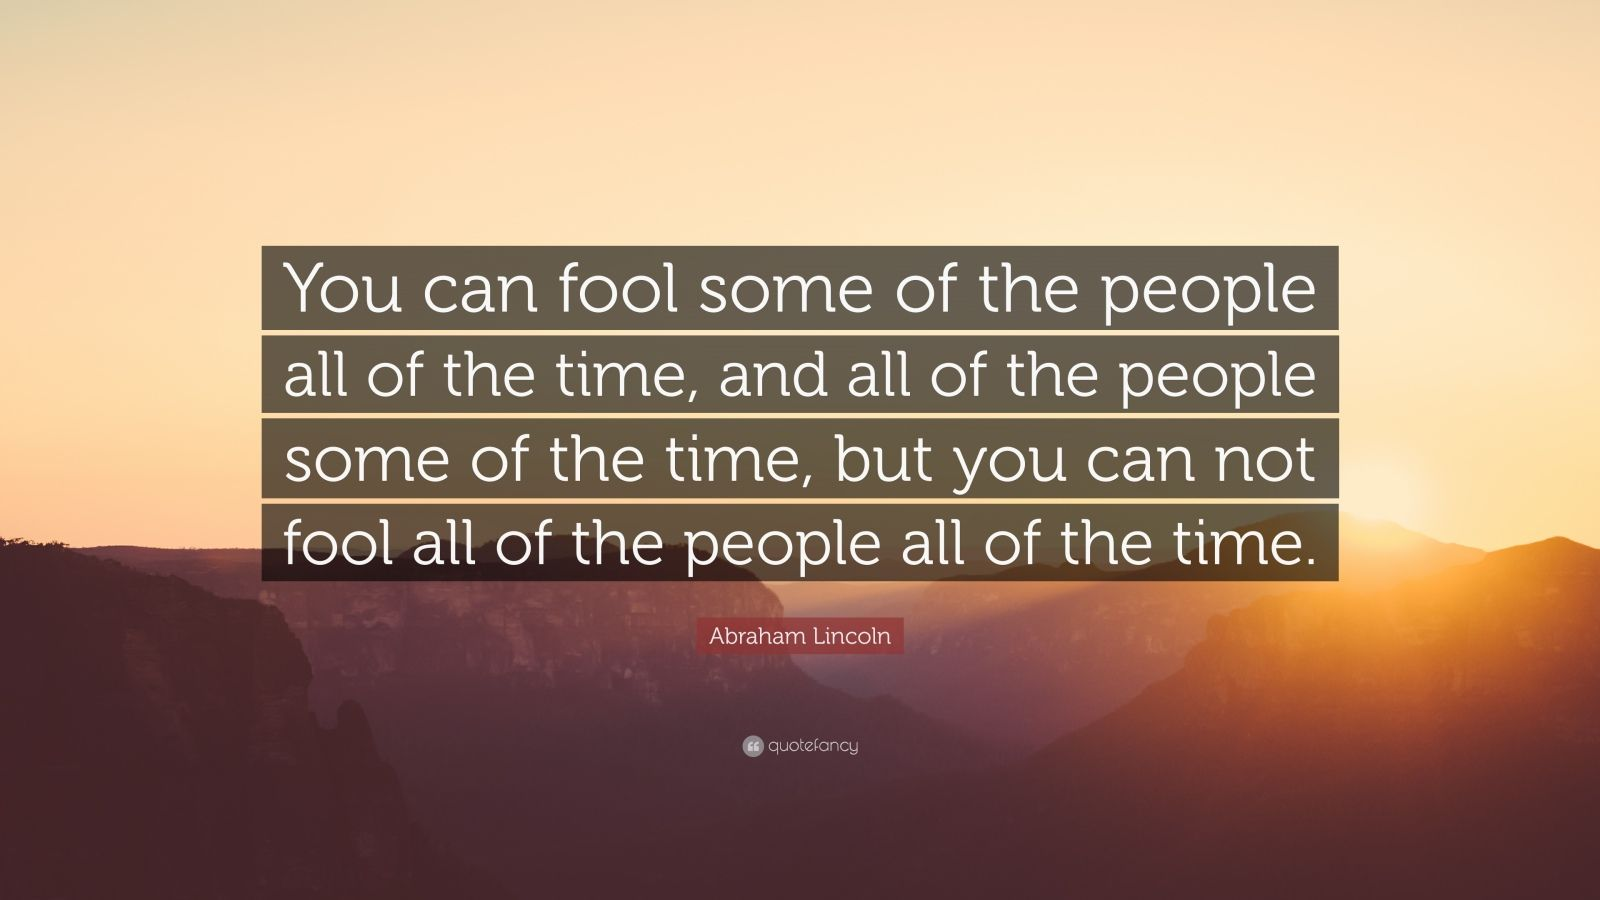 """Abraham Lincoln Quote: """"You can fool some of the people all of the time, and all of the people some of the time, but you can not fool all of the people all of the time."""""""